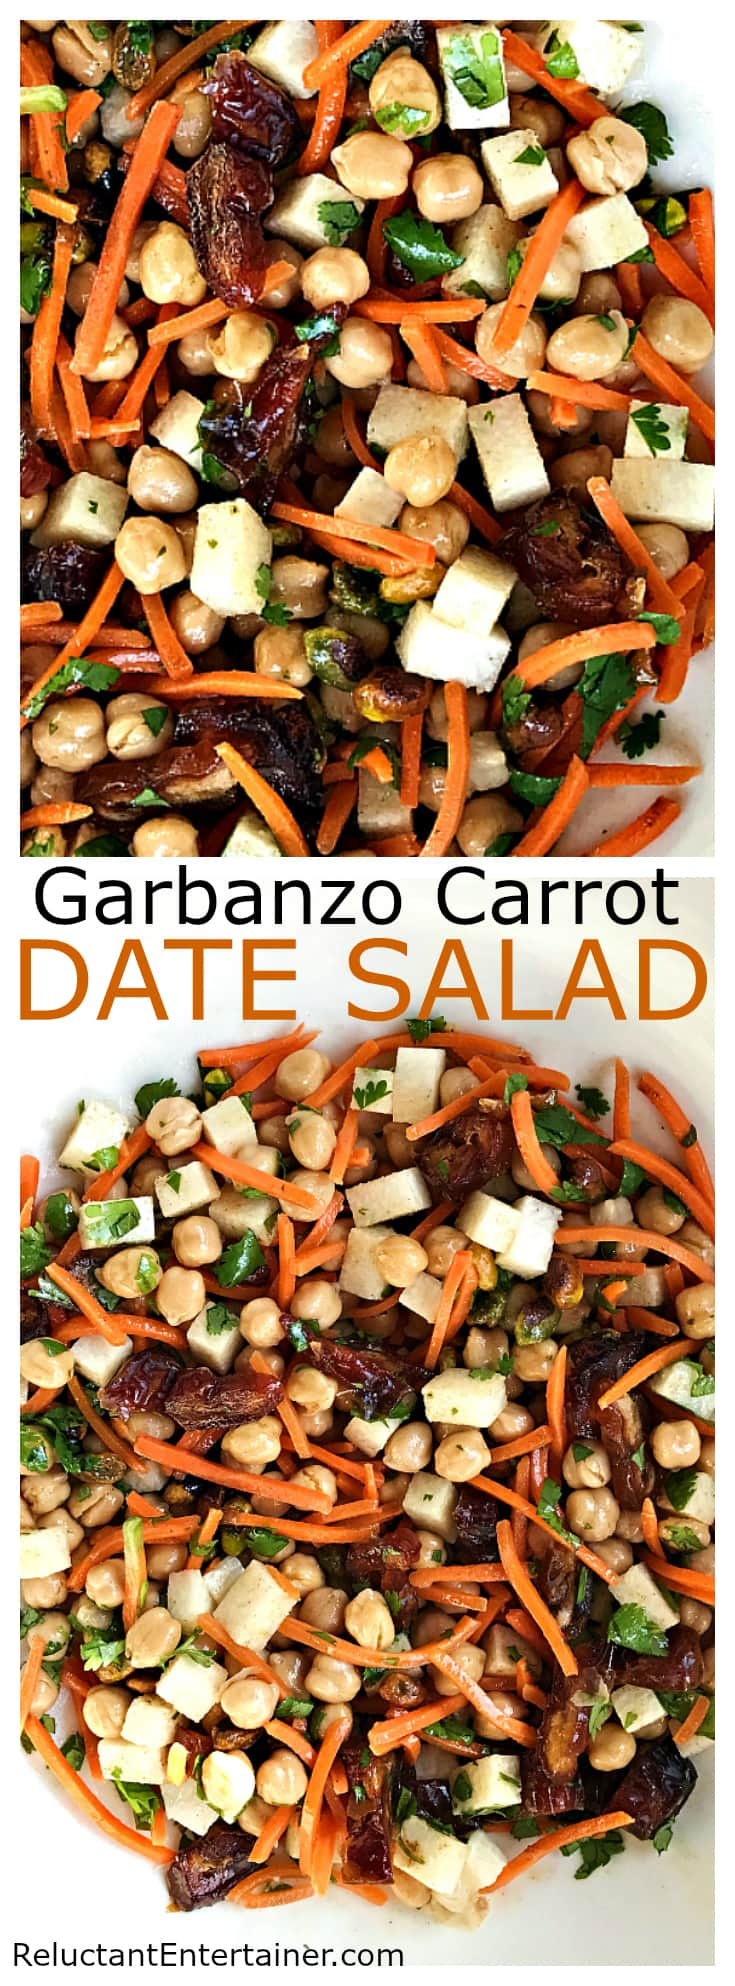 Garbanzo Carrot Date Salad at ReluctantEntertainer.com